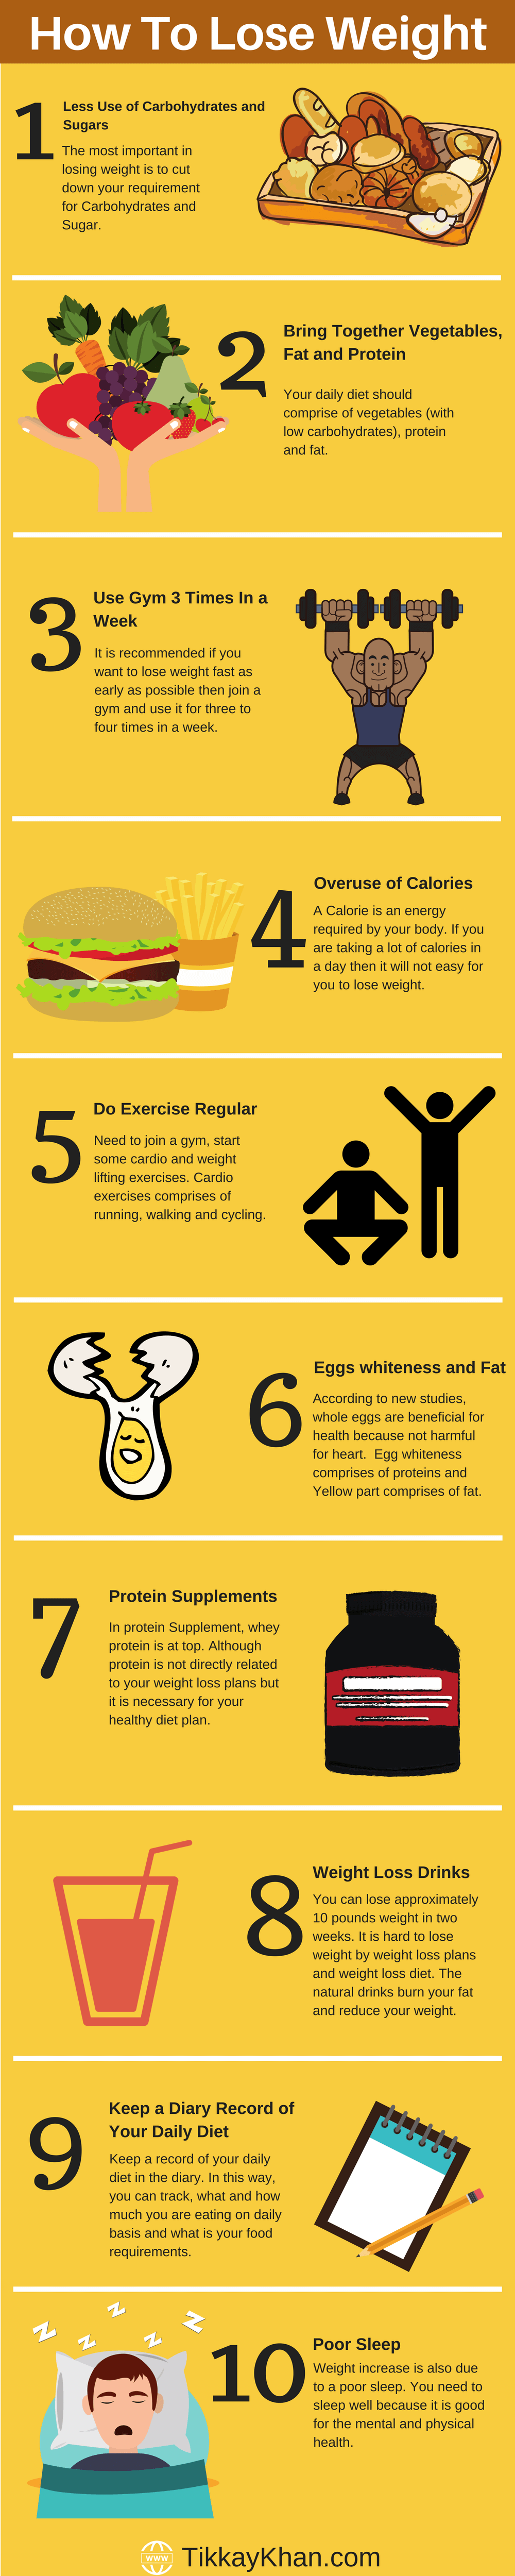 Infographic: How To Lose Weight Fast